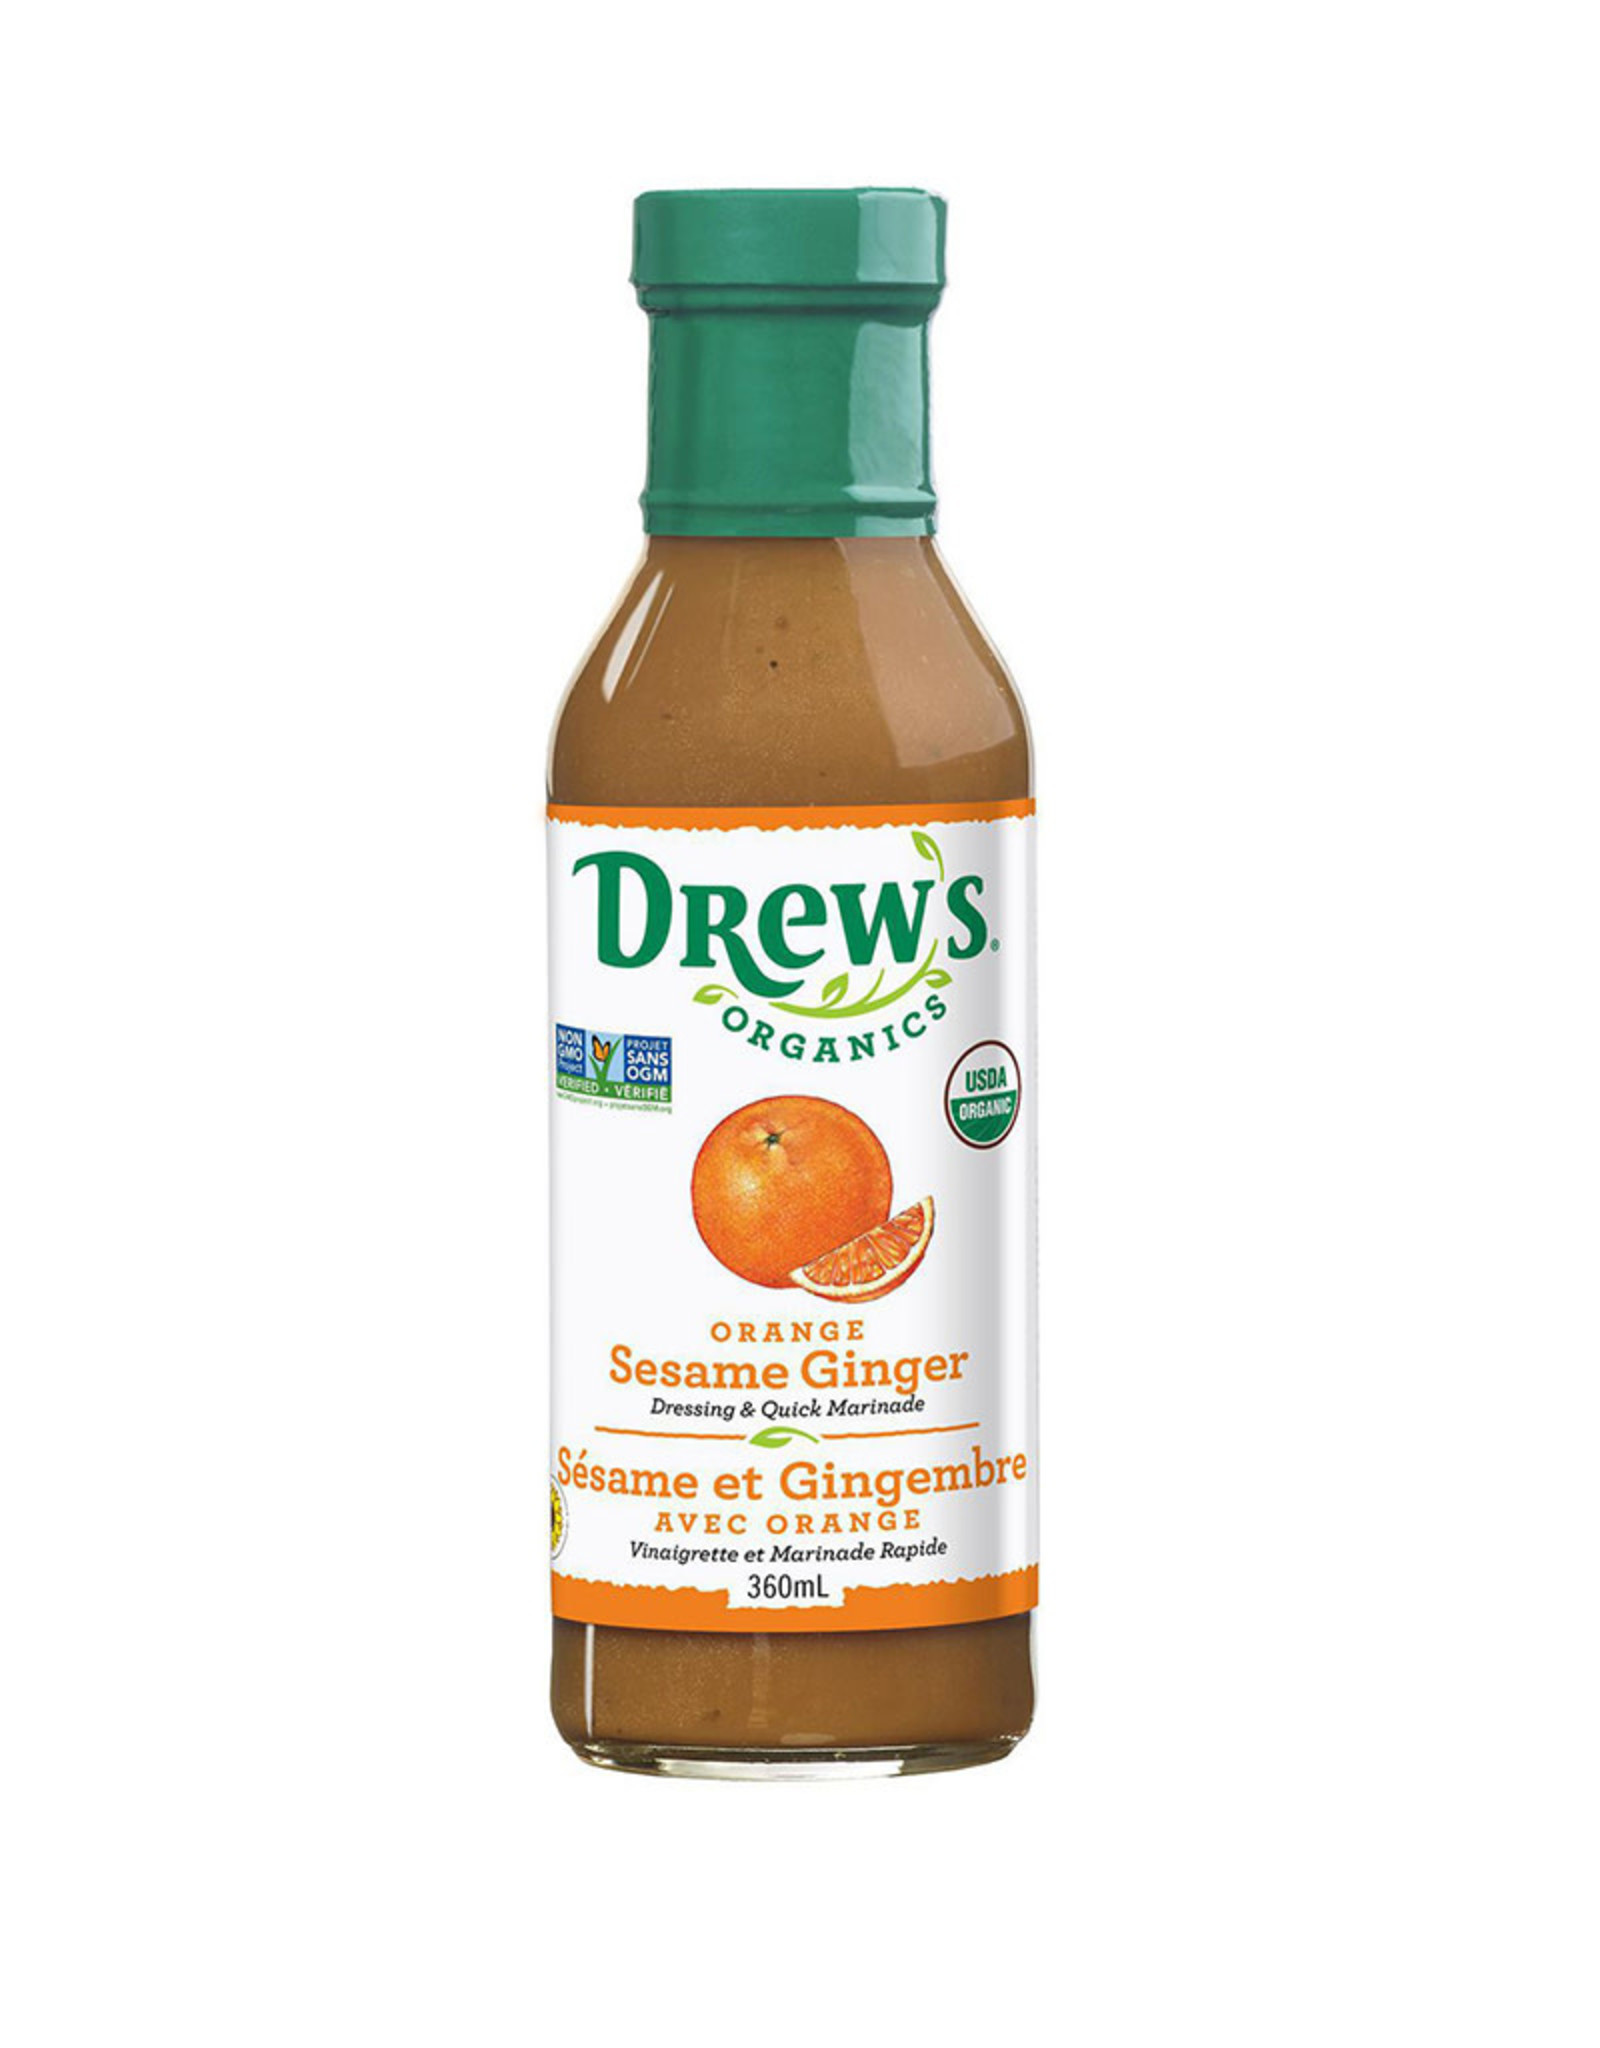 Drew's Organics Drews - Oranic Dressing, Orange Sesame Ginger (360ml)